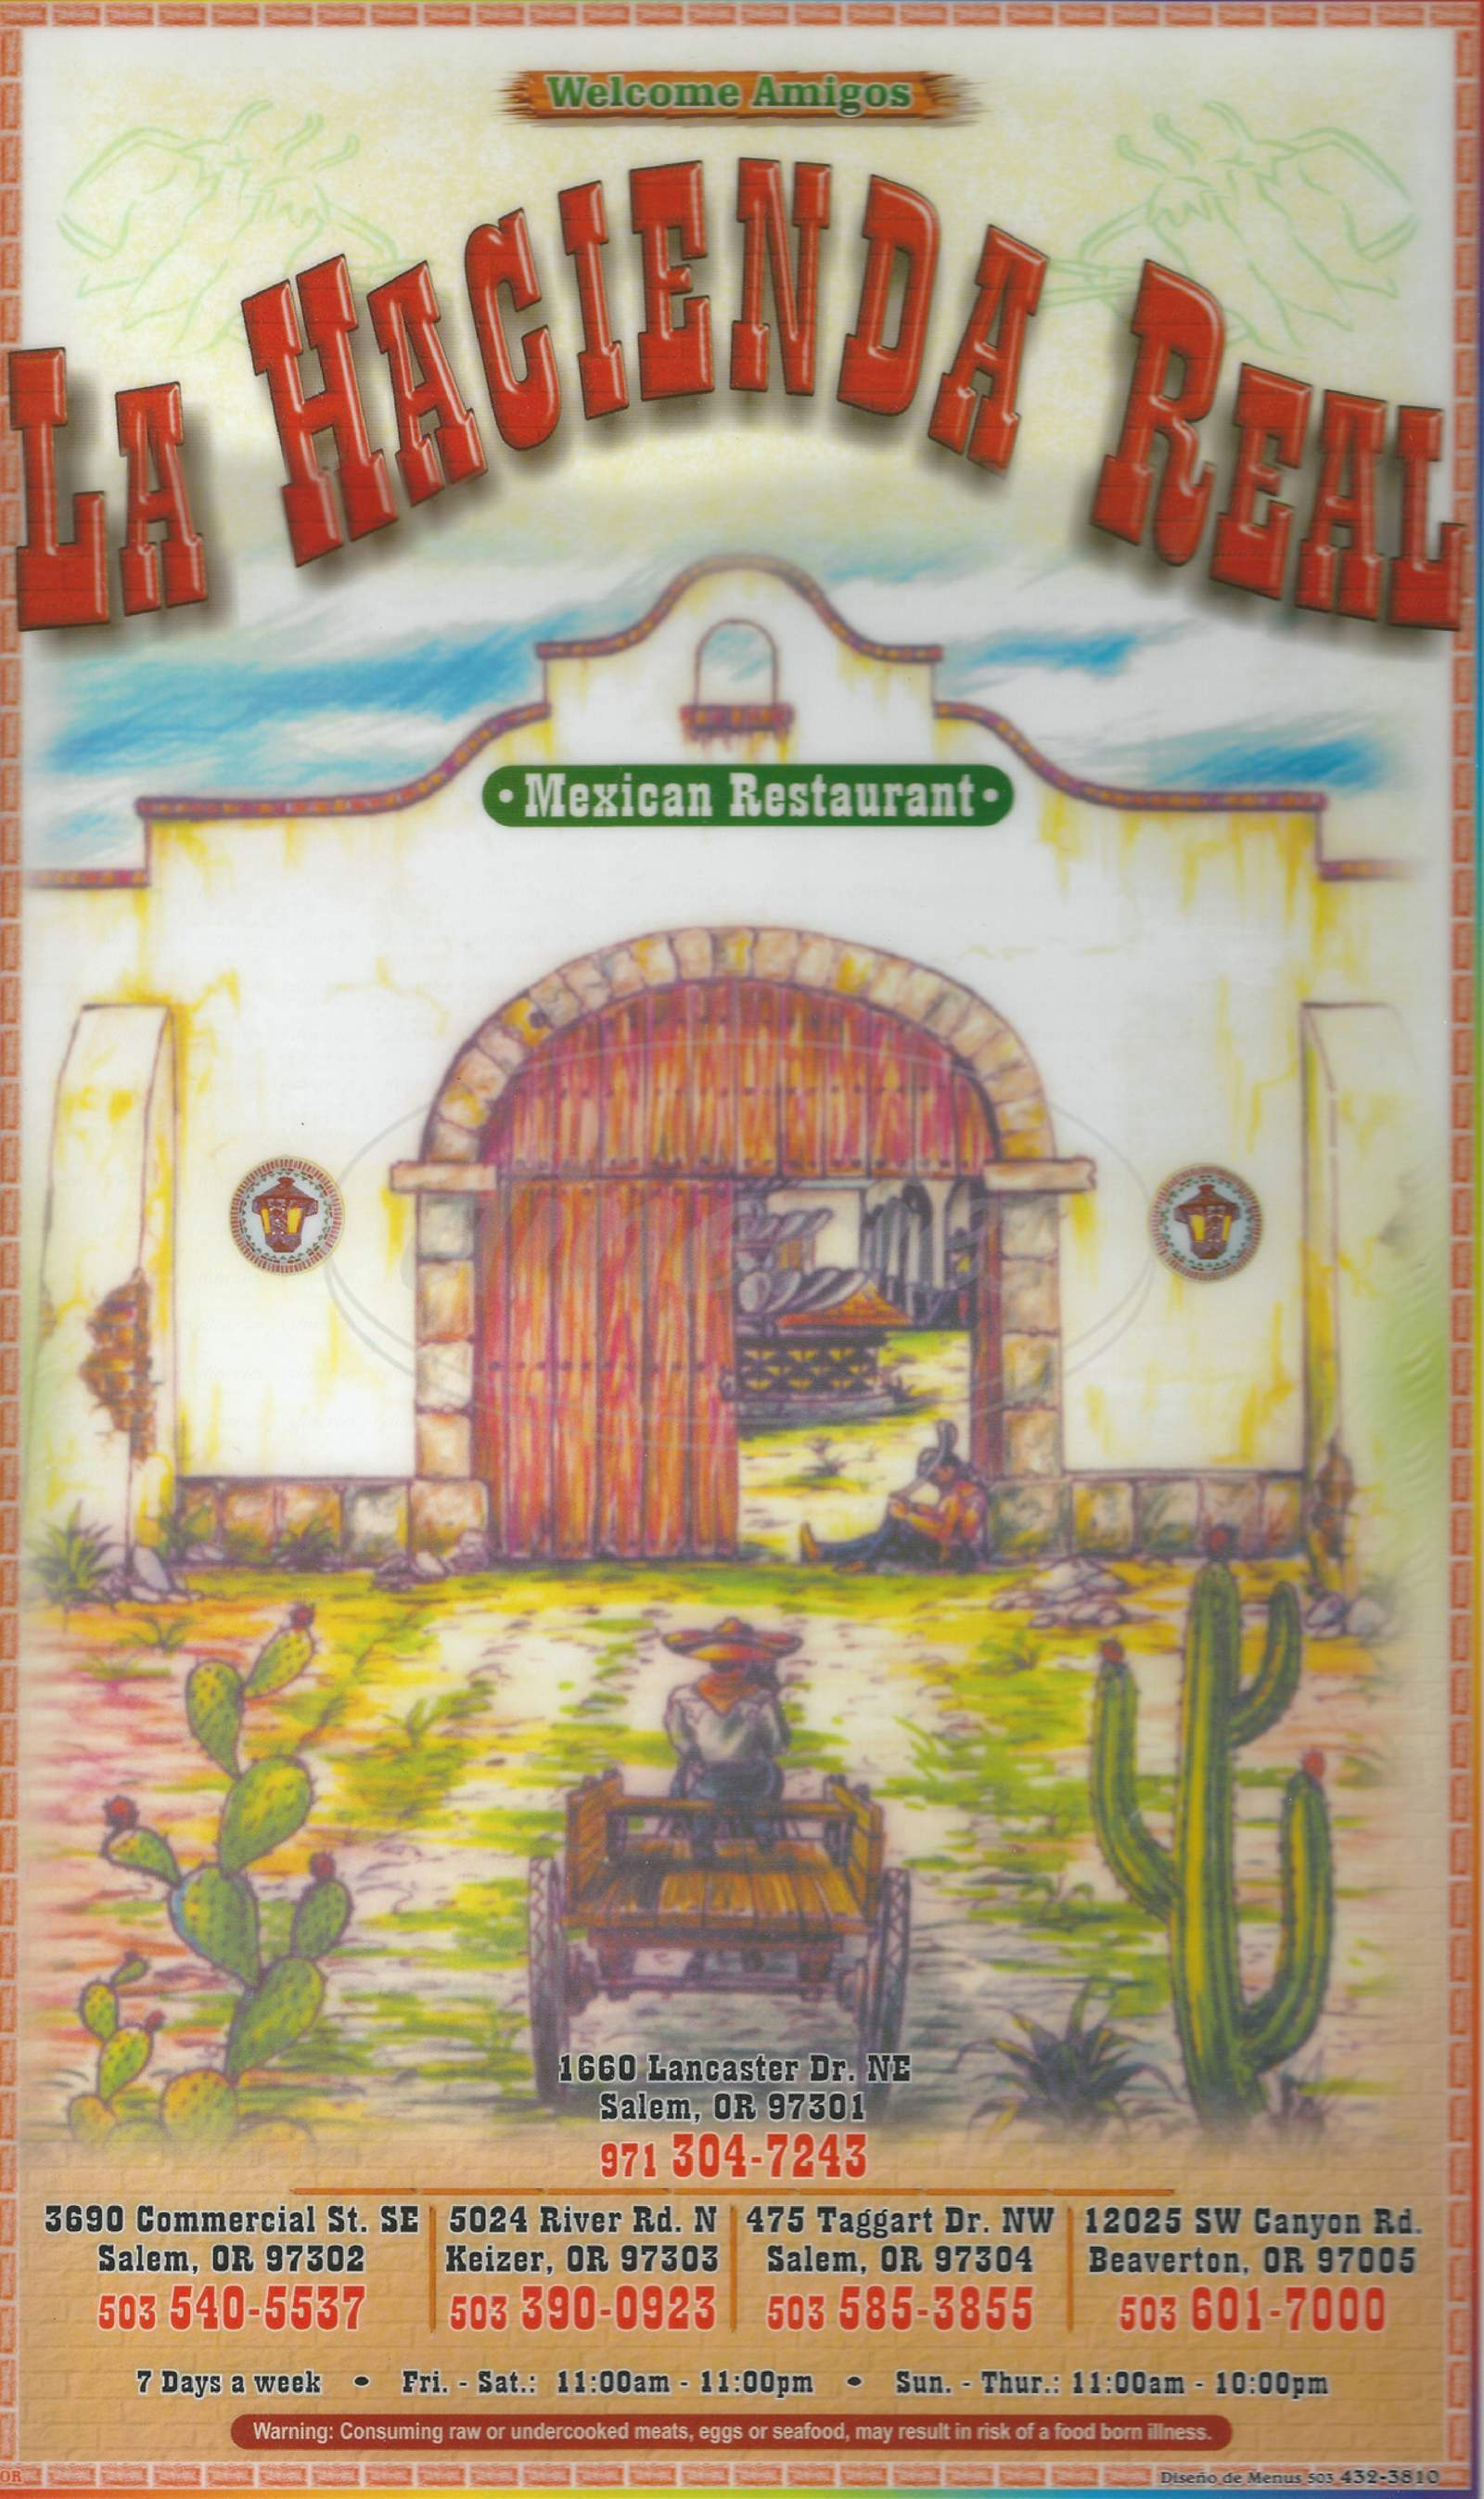 menu for La Hacienda Real